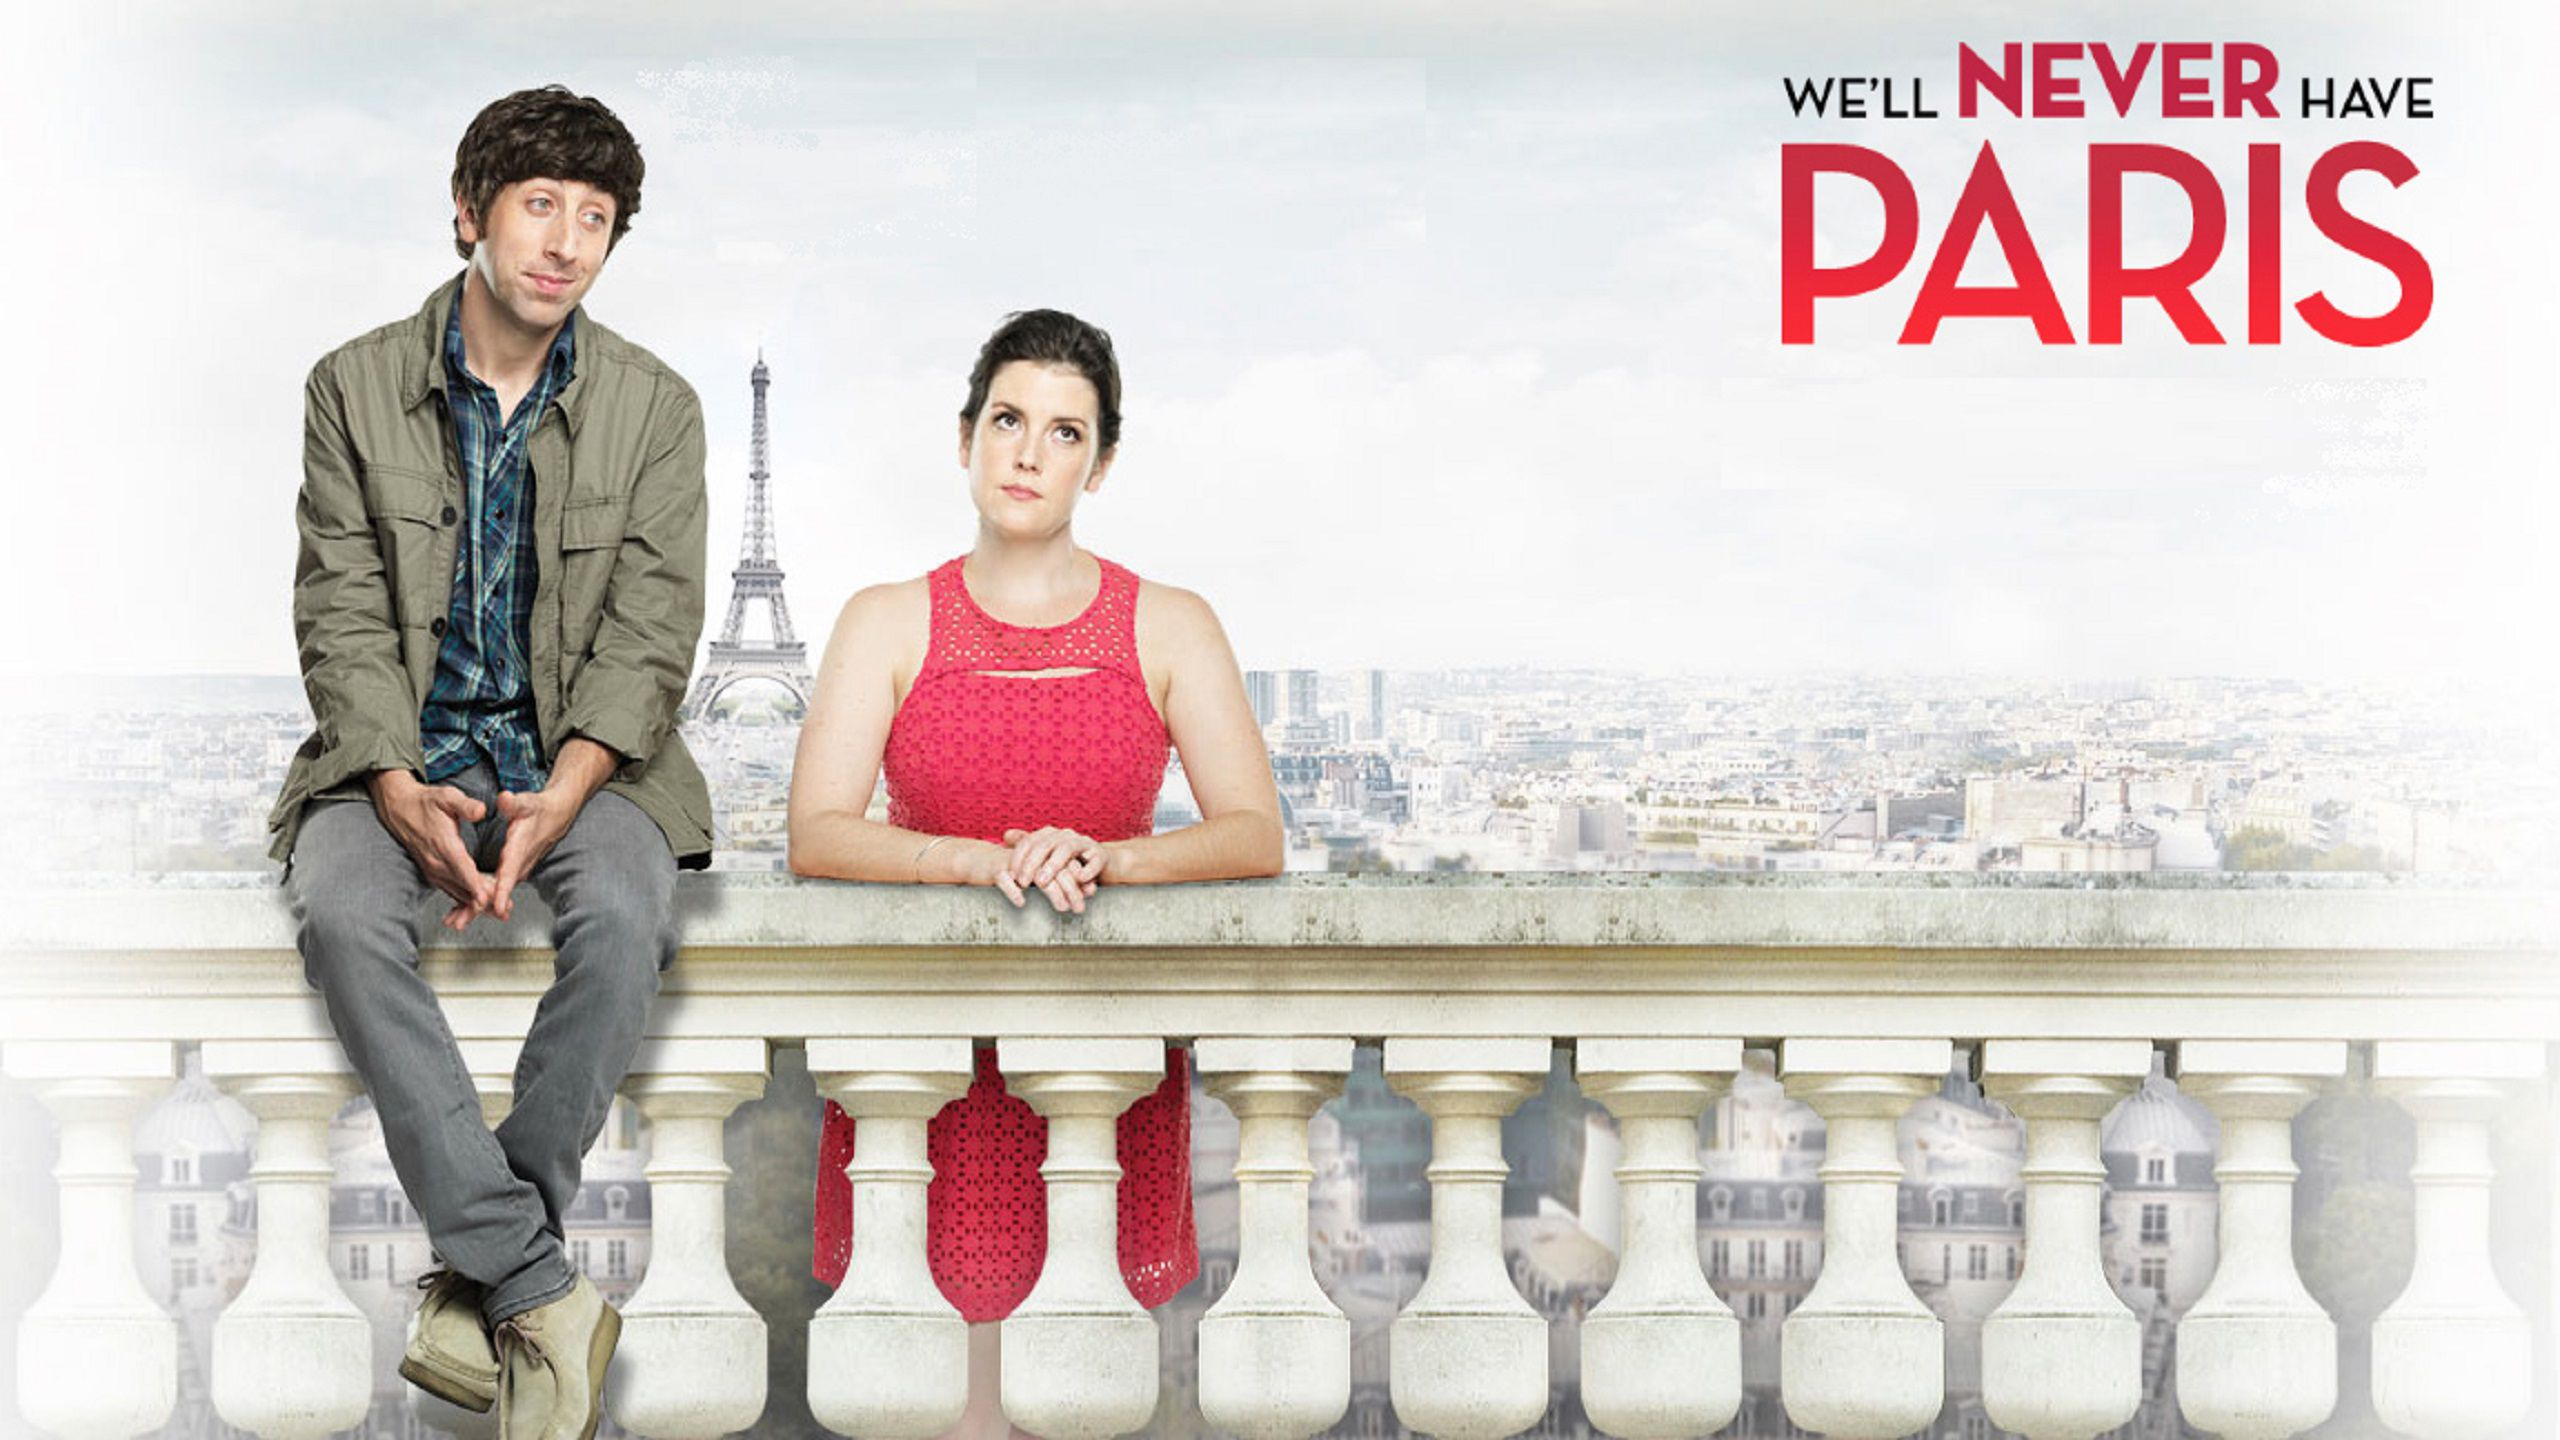 We'll never have Paris (2014) with Simon Helberg